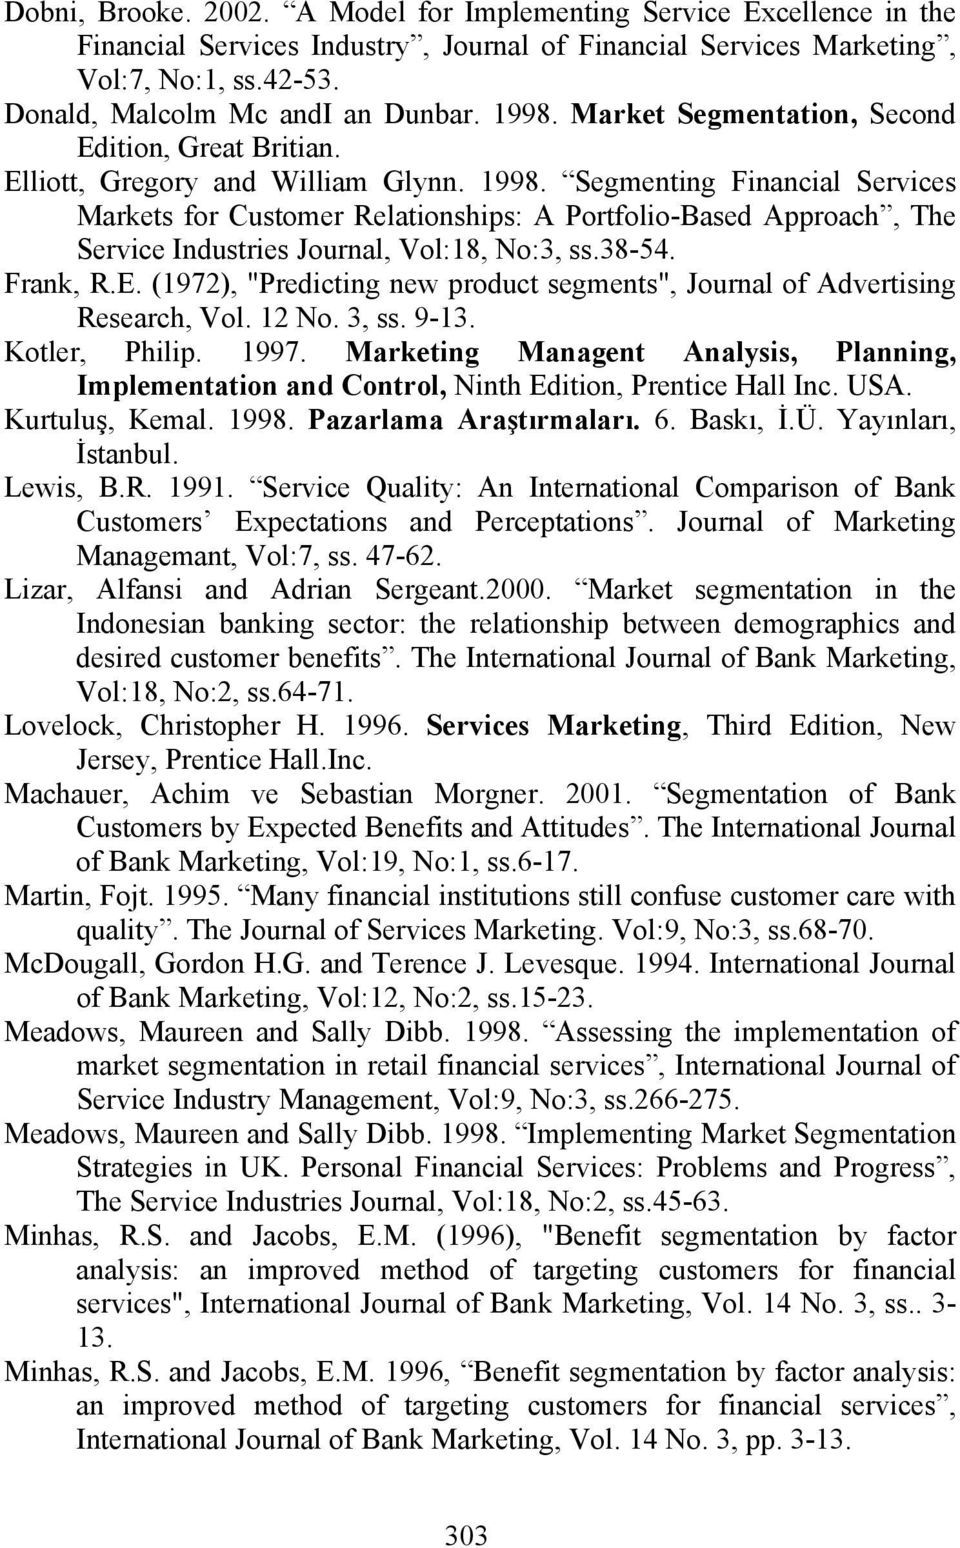 Segmenting Financial Services Markets for Customer Relationships: A Portfolio-Based Approach, The Service Industries Journal, Vol:18, No:3, ss.38-54. Frank, R.E.